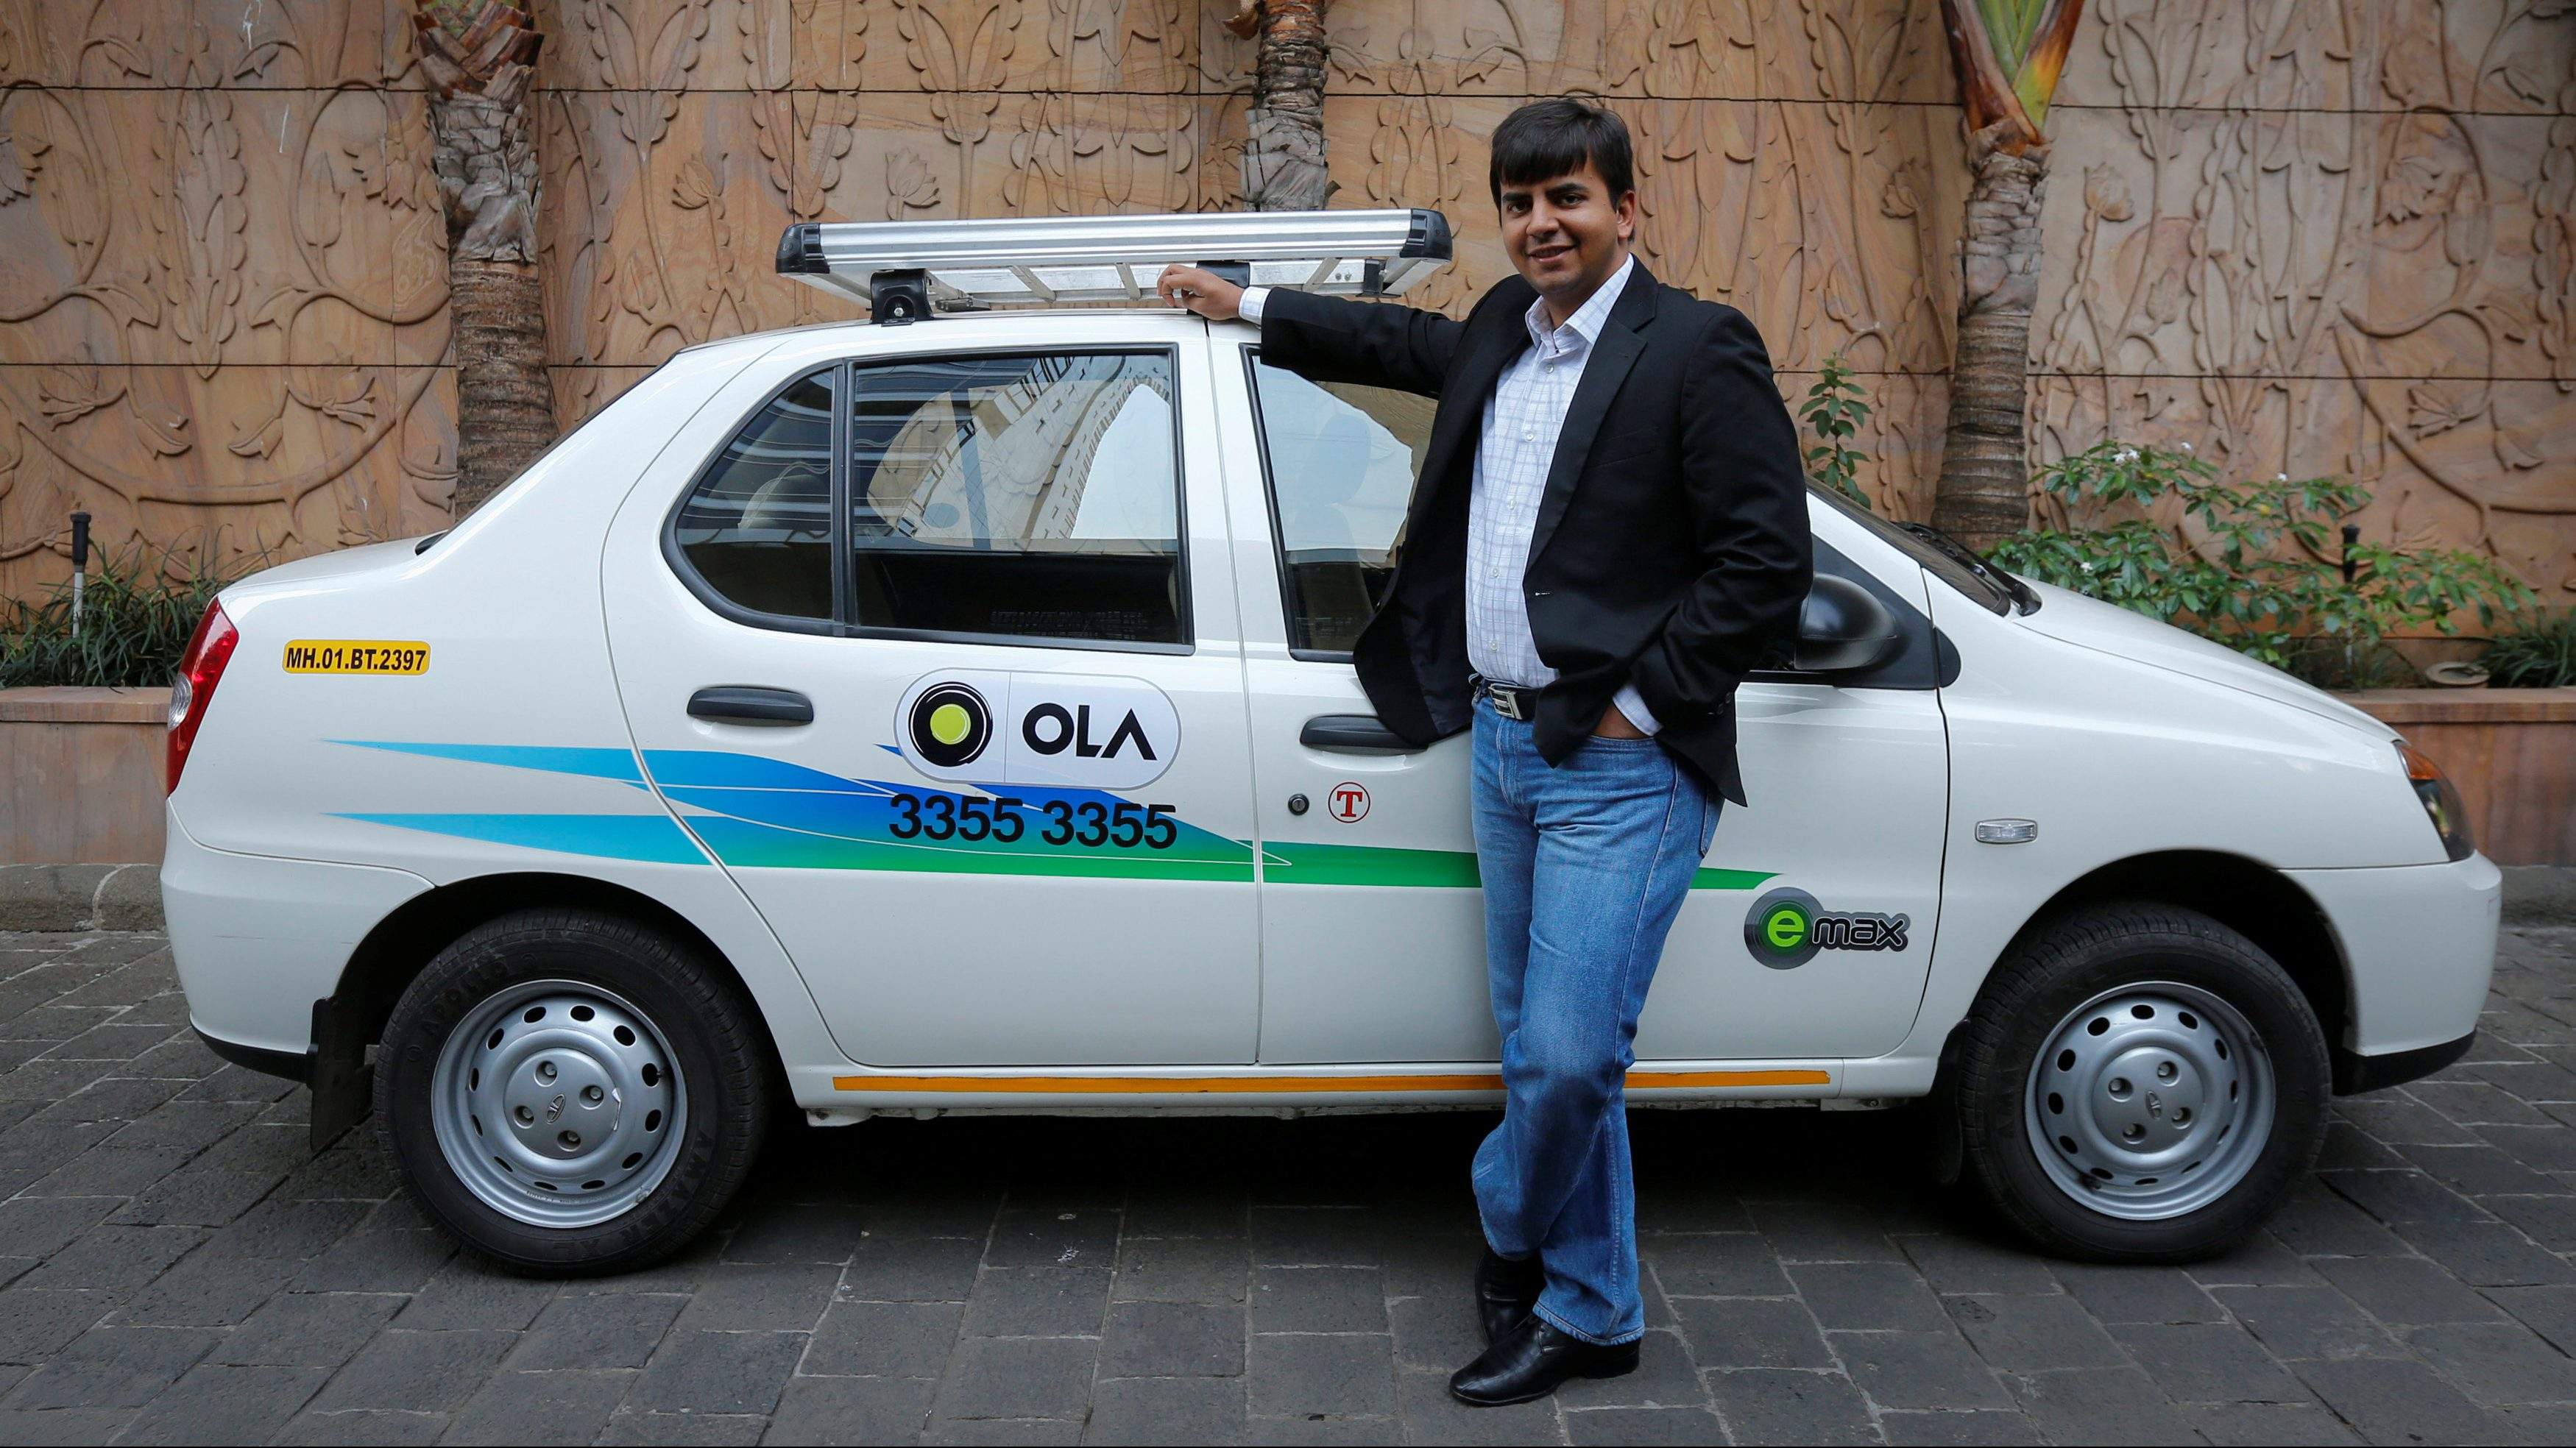 Bhavish Aggarwal, CEO and co-founder of Ola, an app-based cab service provider, poses in front of an Ola cab in Mumbai